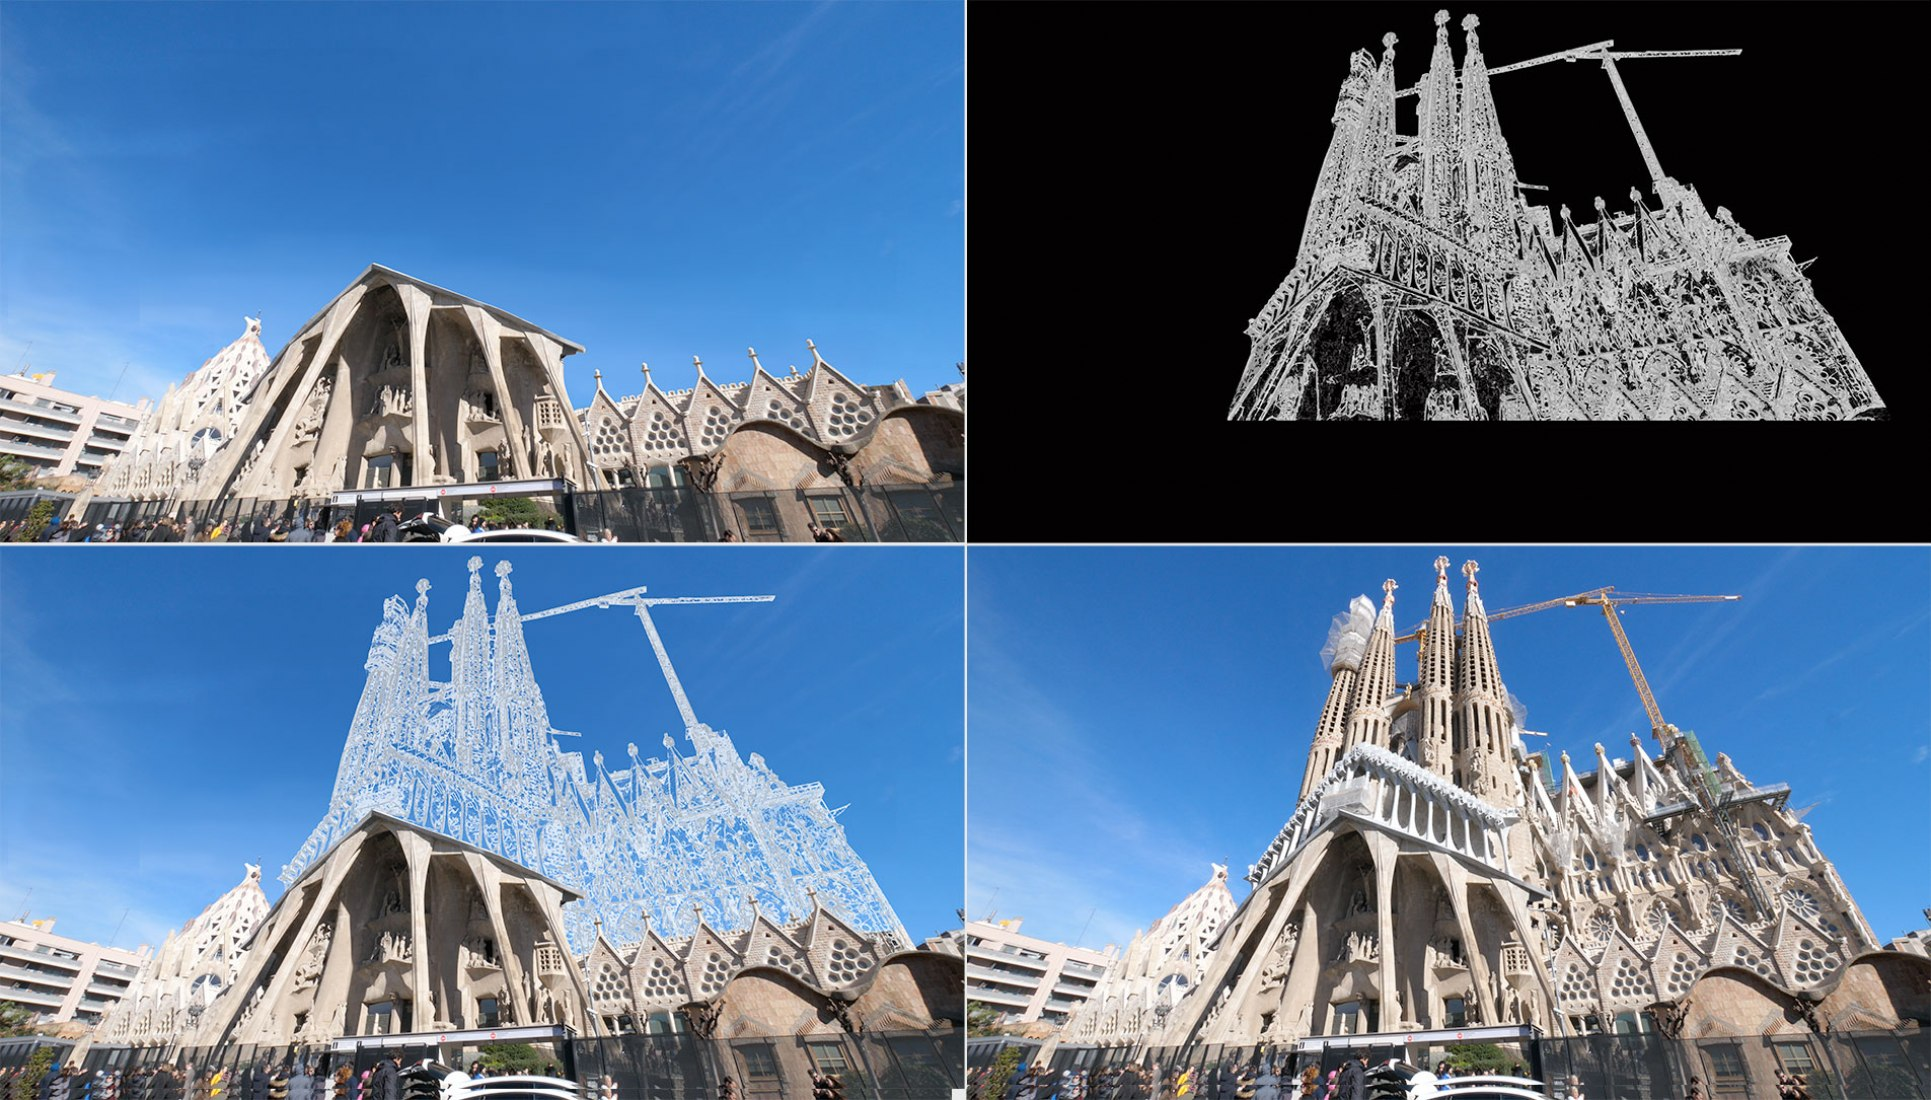 Barcelona Archi'llusion, imagine the city that could be, by Maxime // Menilmonde